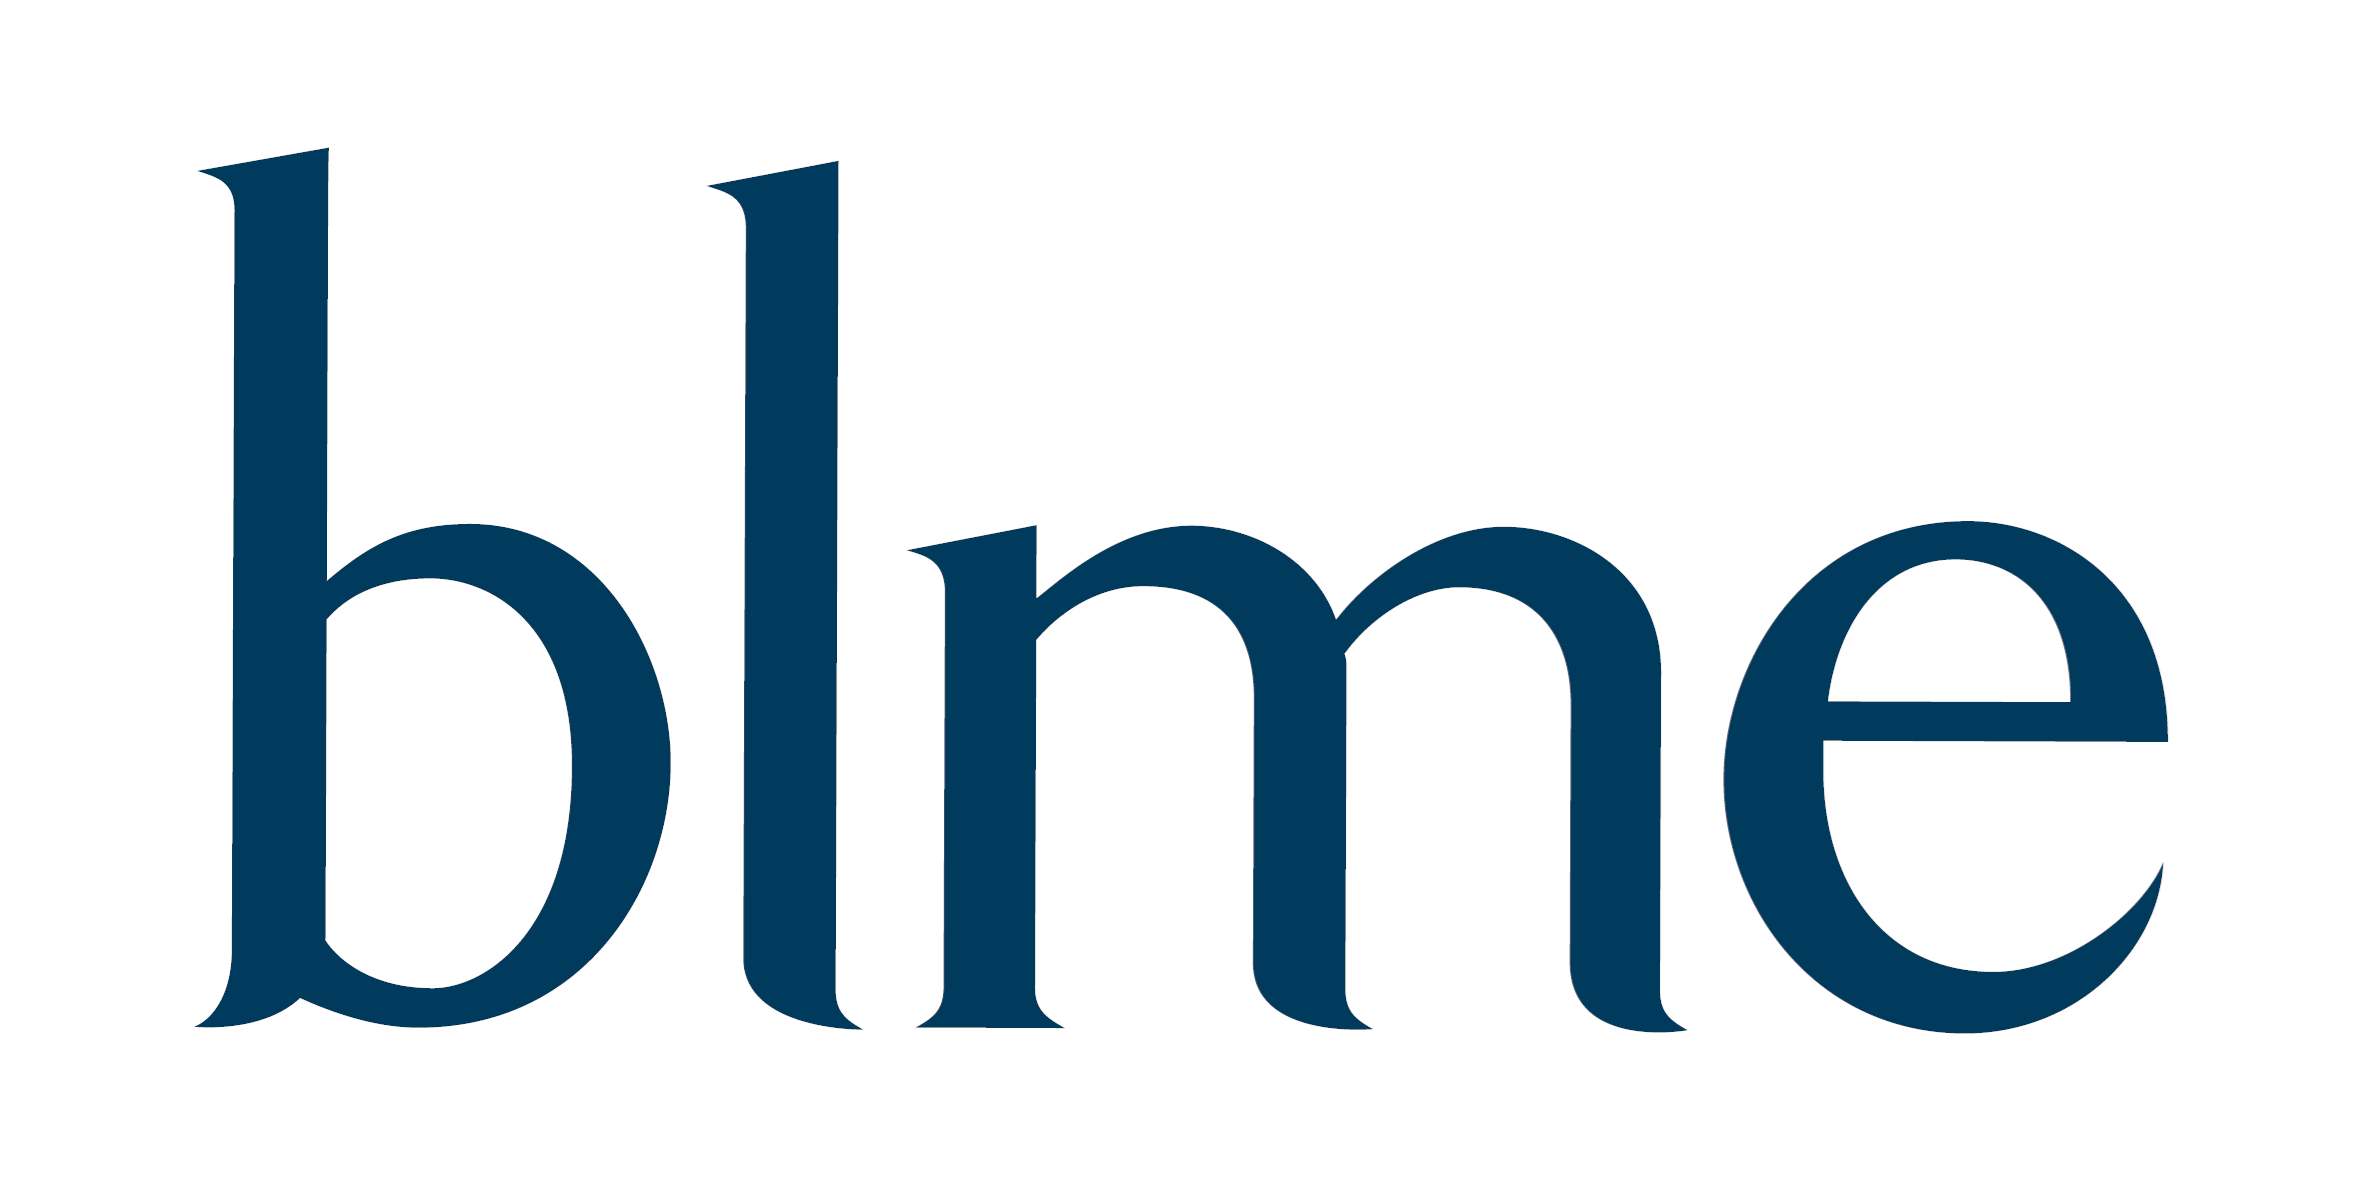 Logo for Bank of London and the Middle East (BLME)